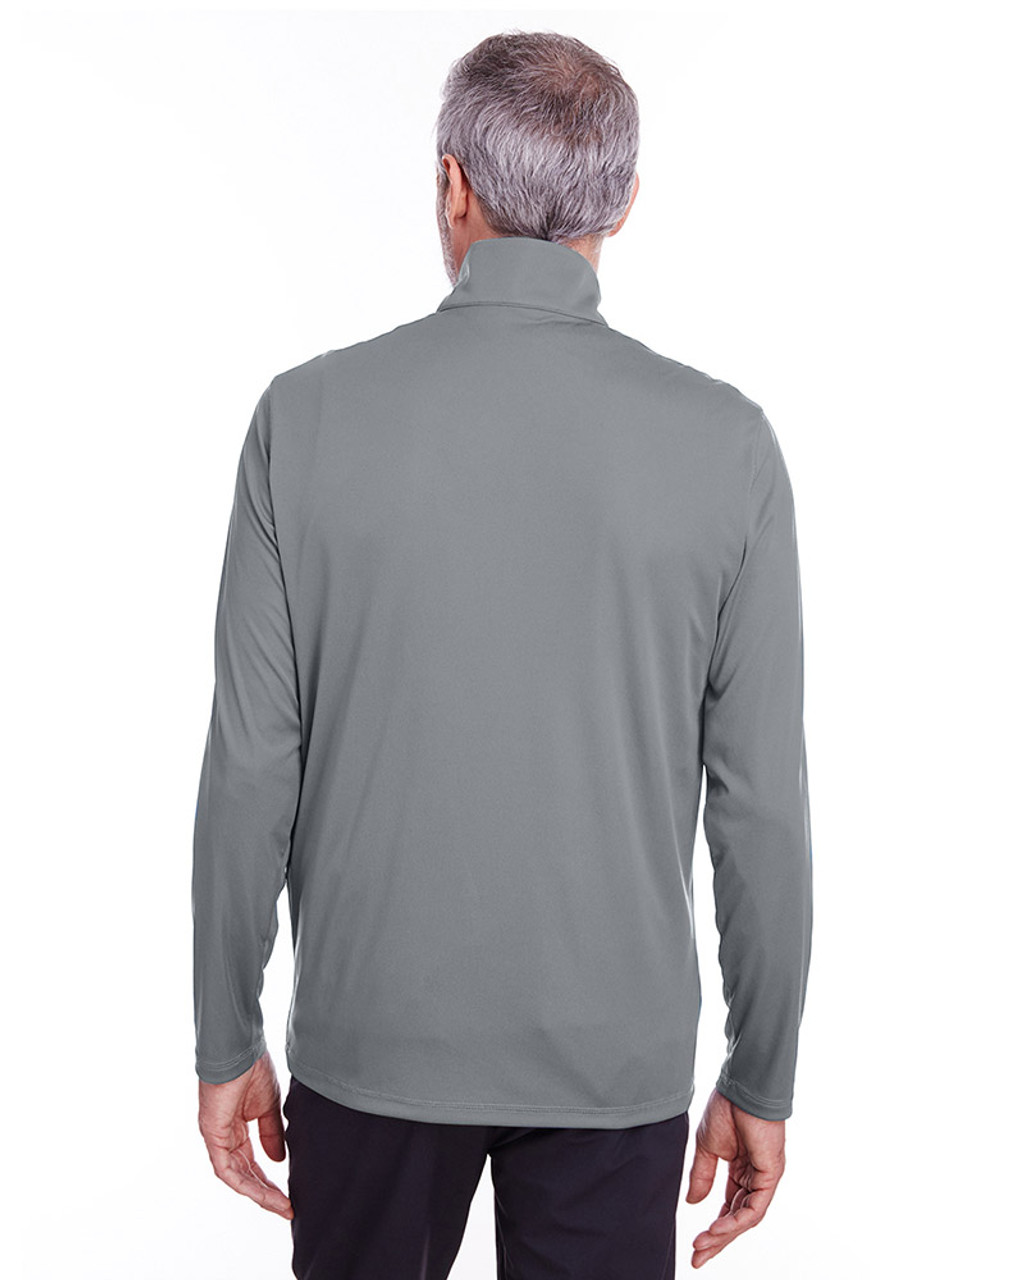 Quiet Shade - back, 596807 Puma Golf Men's Icon Quarter-Zip Shirt | Blankclothing.ca